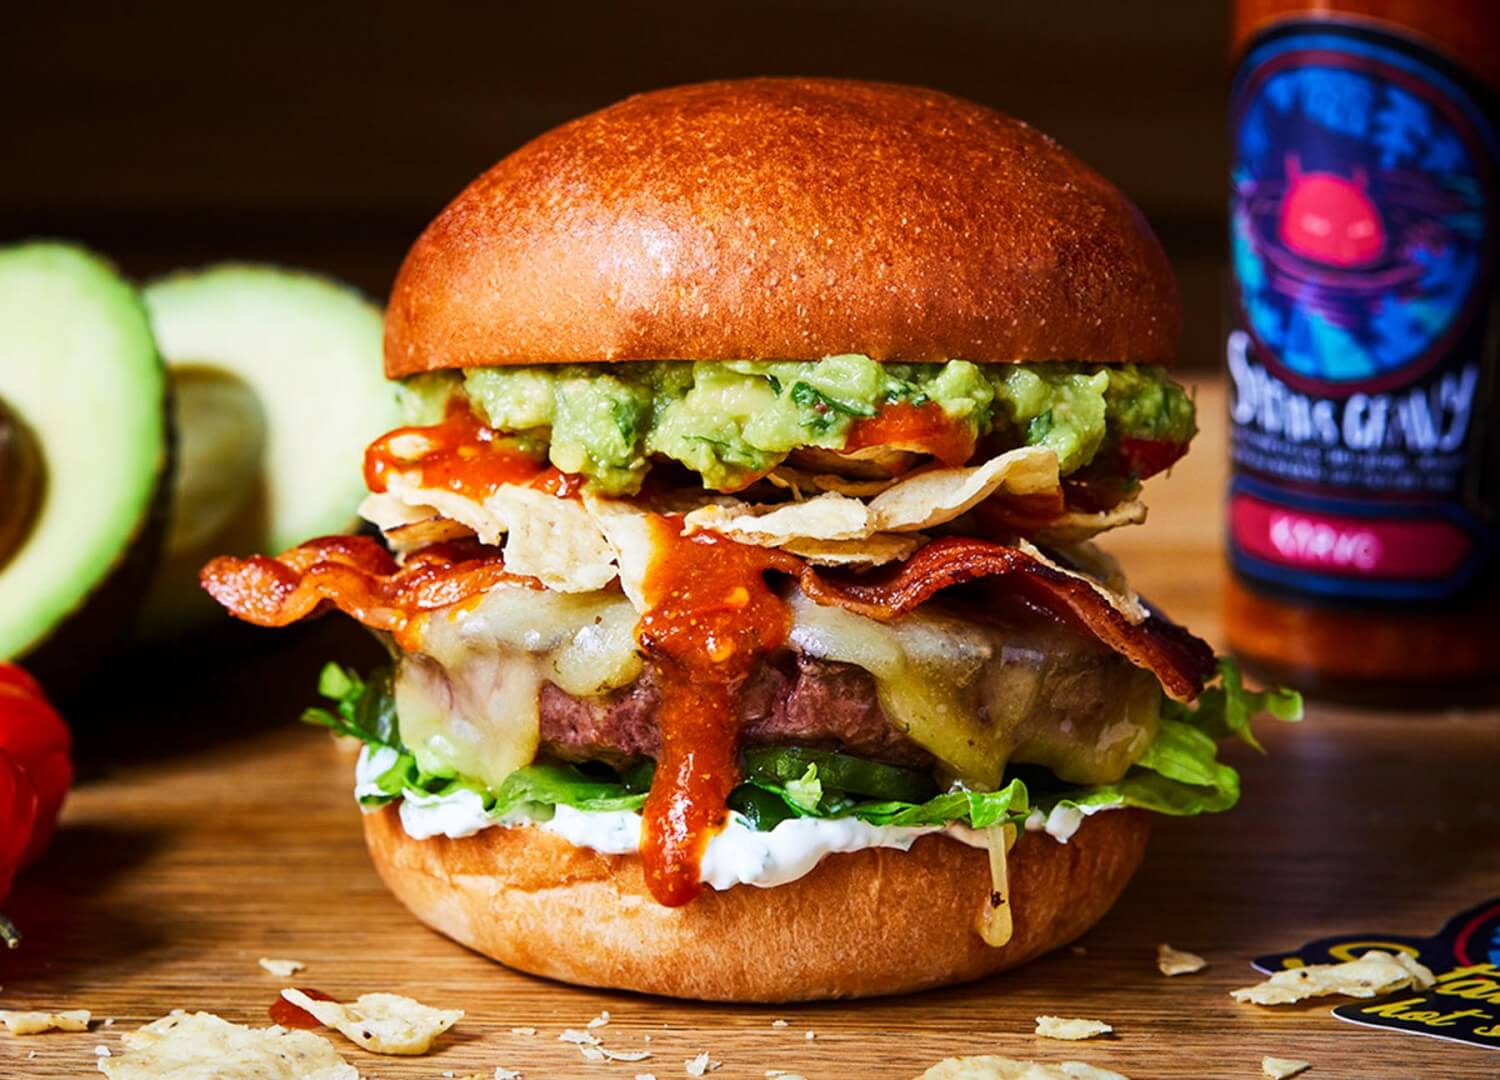 Honest beef burger with hot sauce, bacon, cheese, avocado and nachos